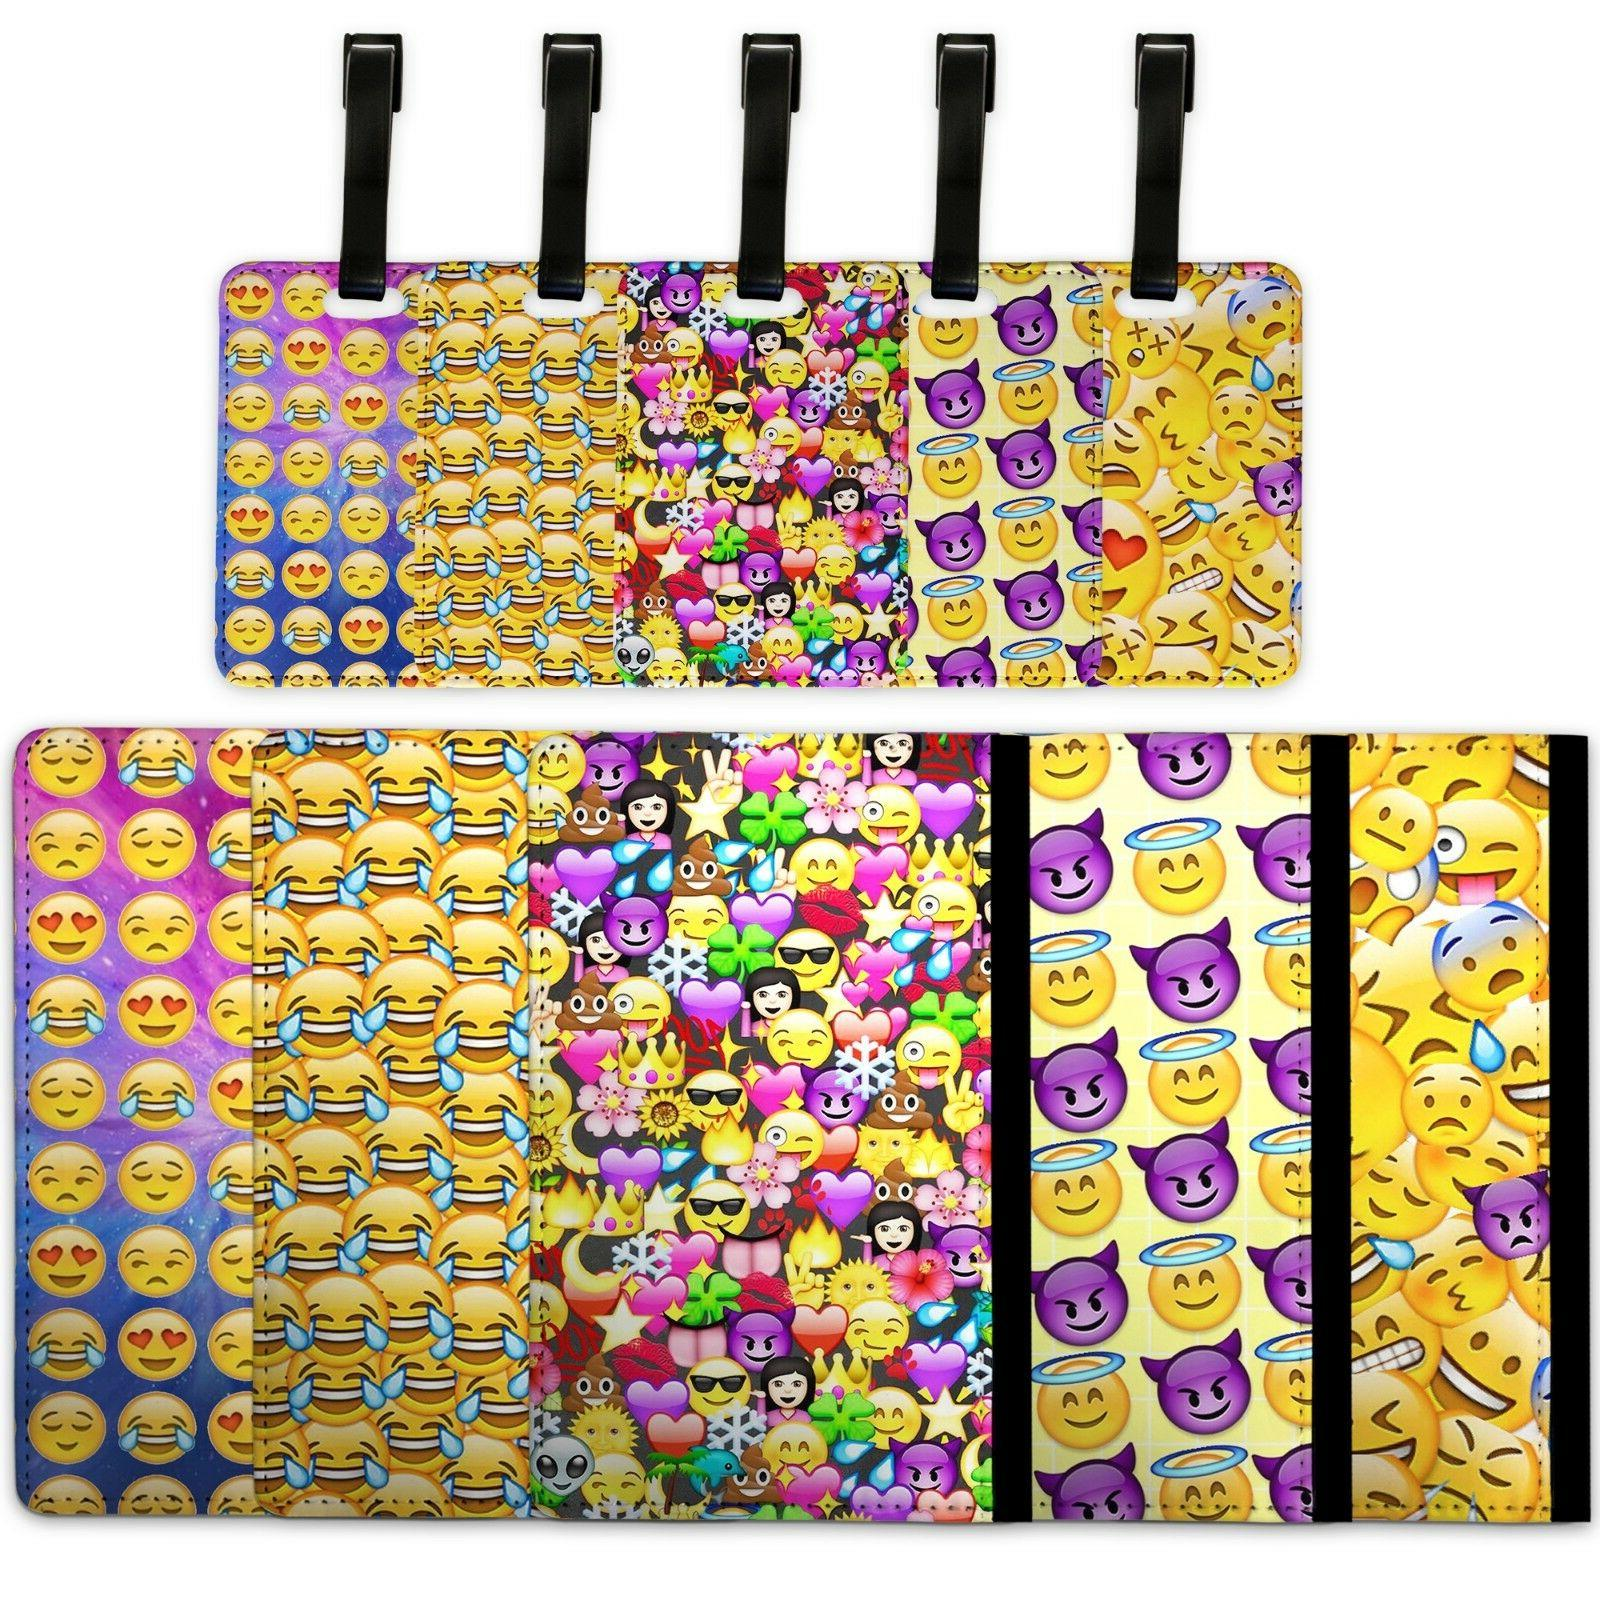 Emoji Pattern Emojicon - Passport Cover & Luggage Tag Travel